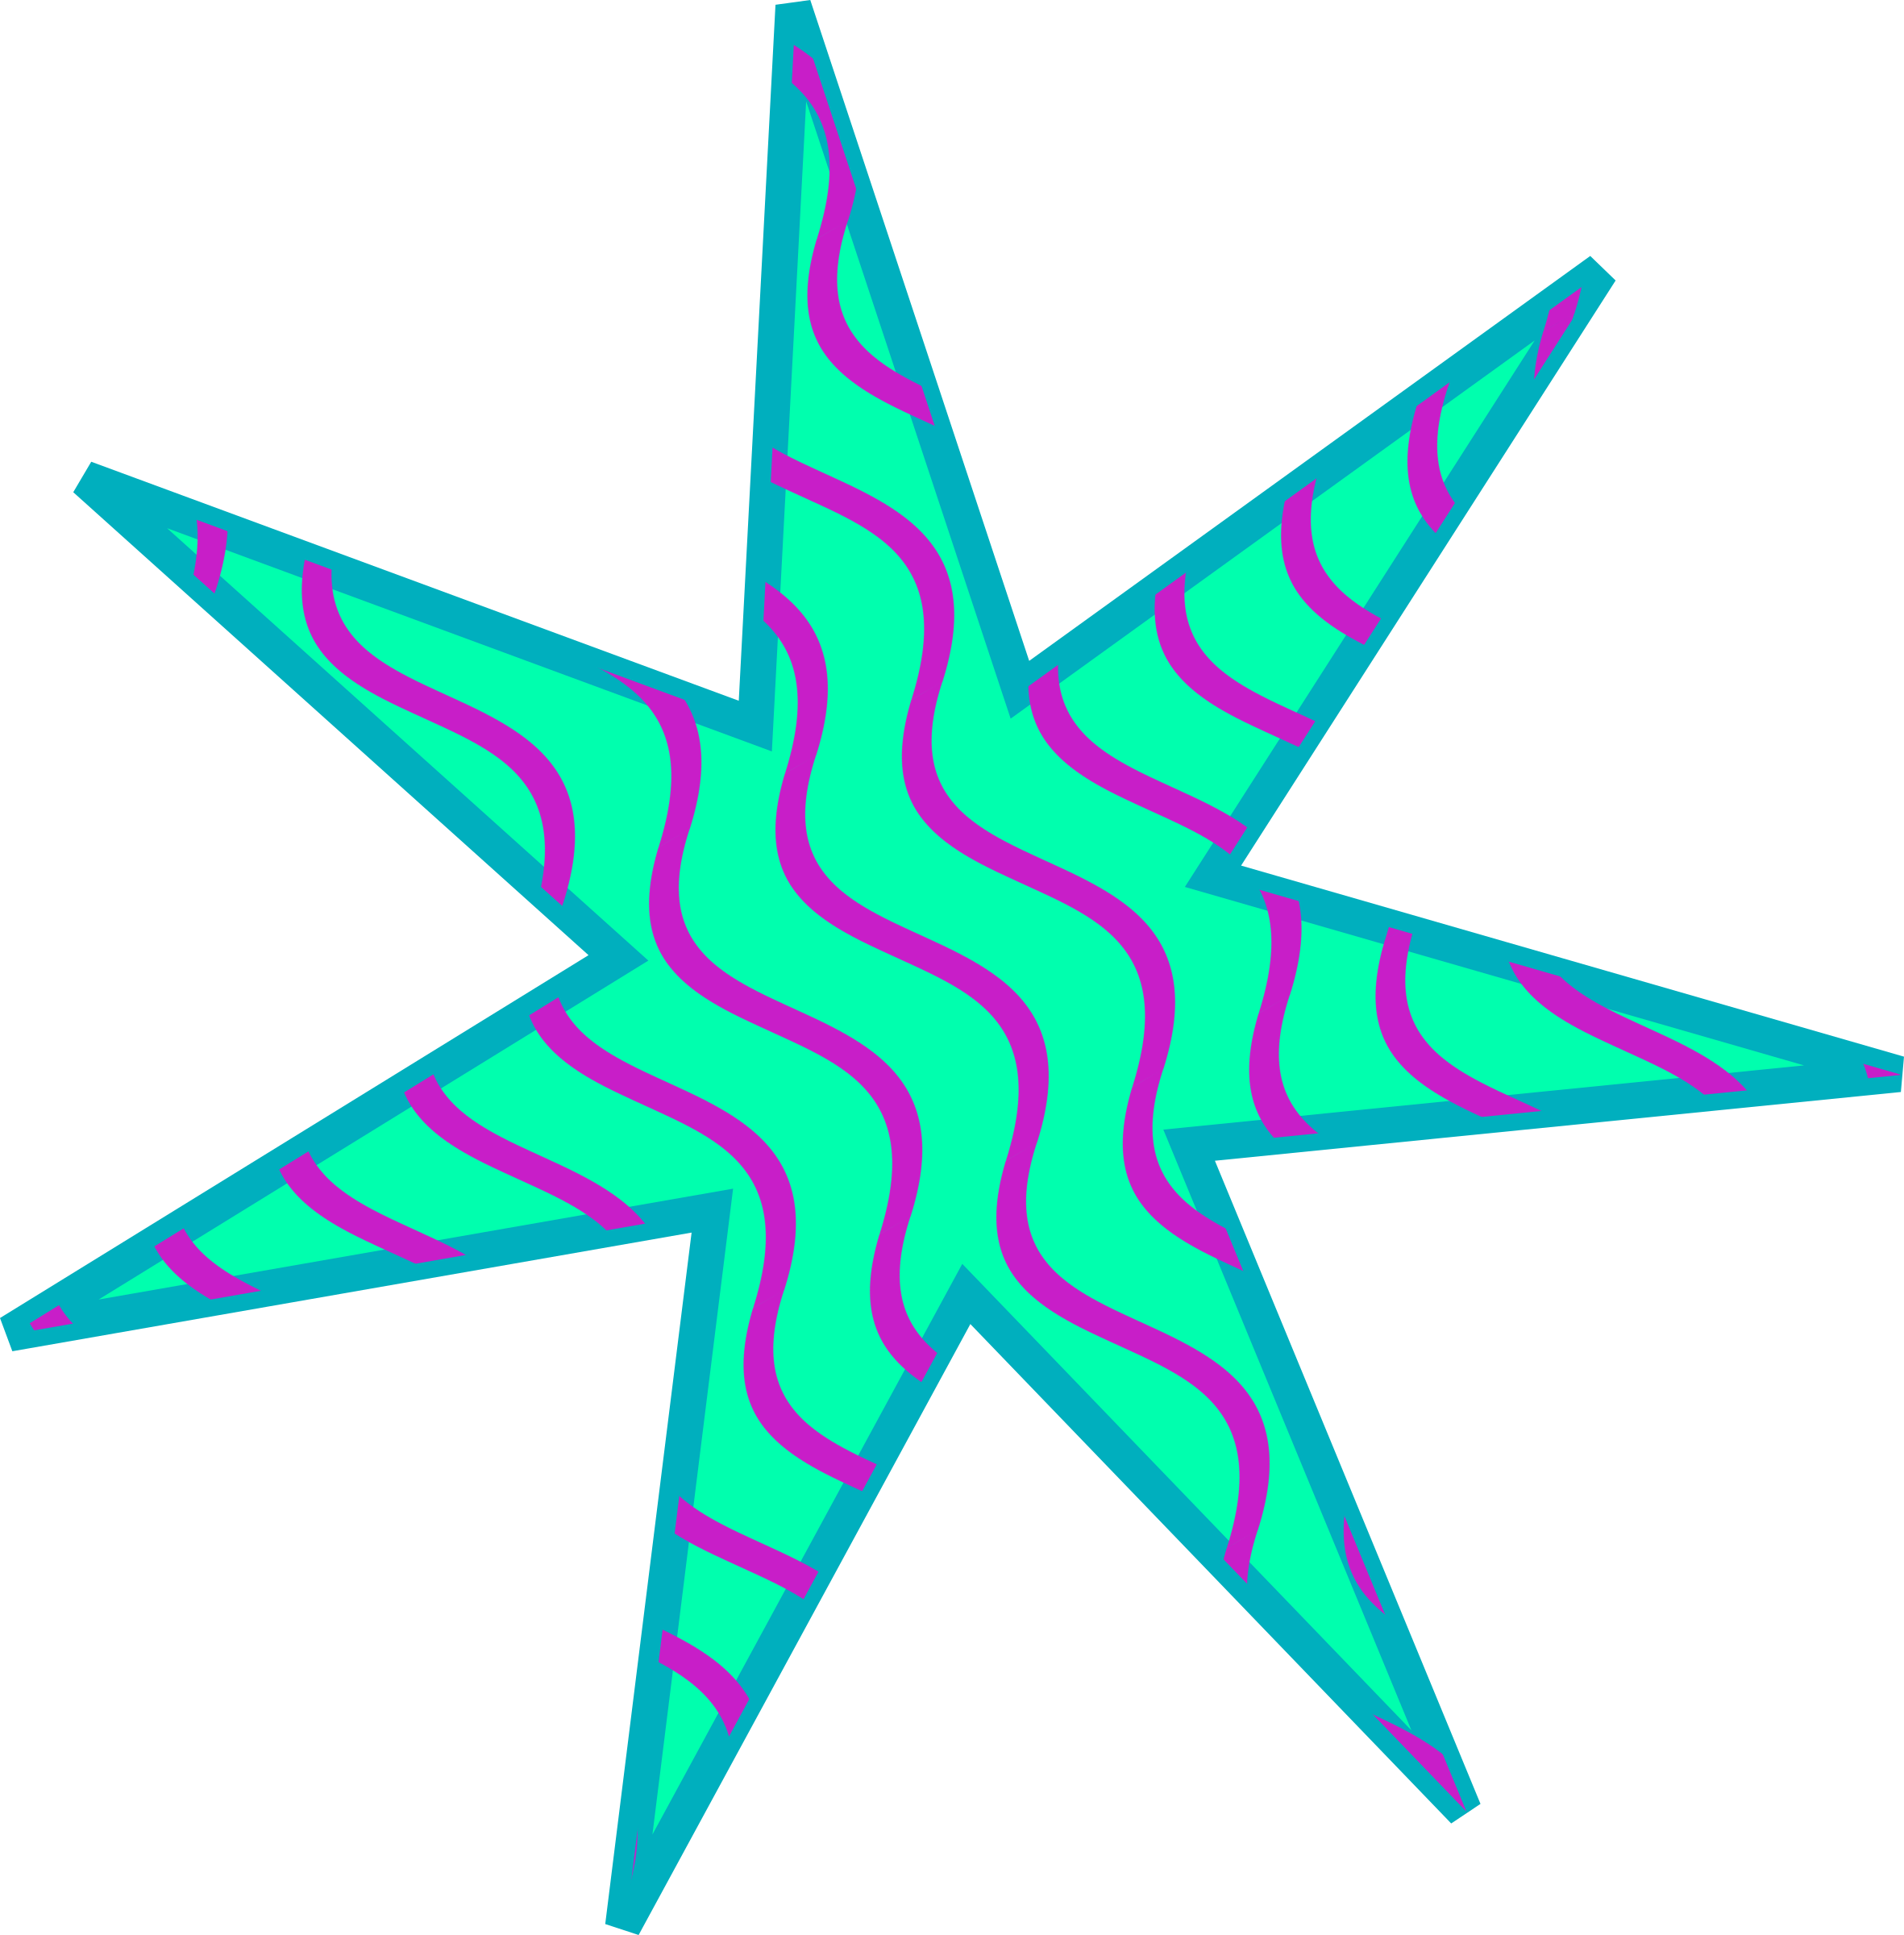 image library library 90s clipart. Crazy star big image.